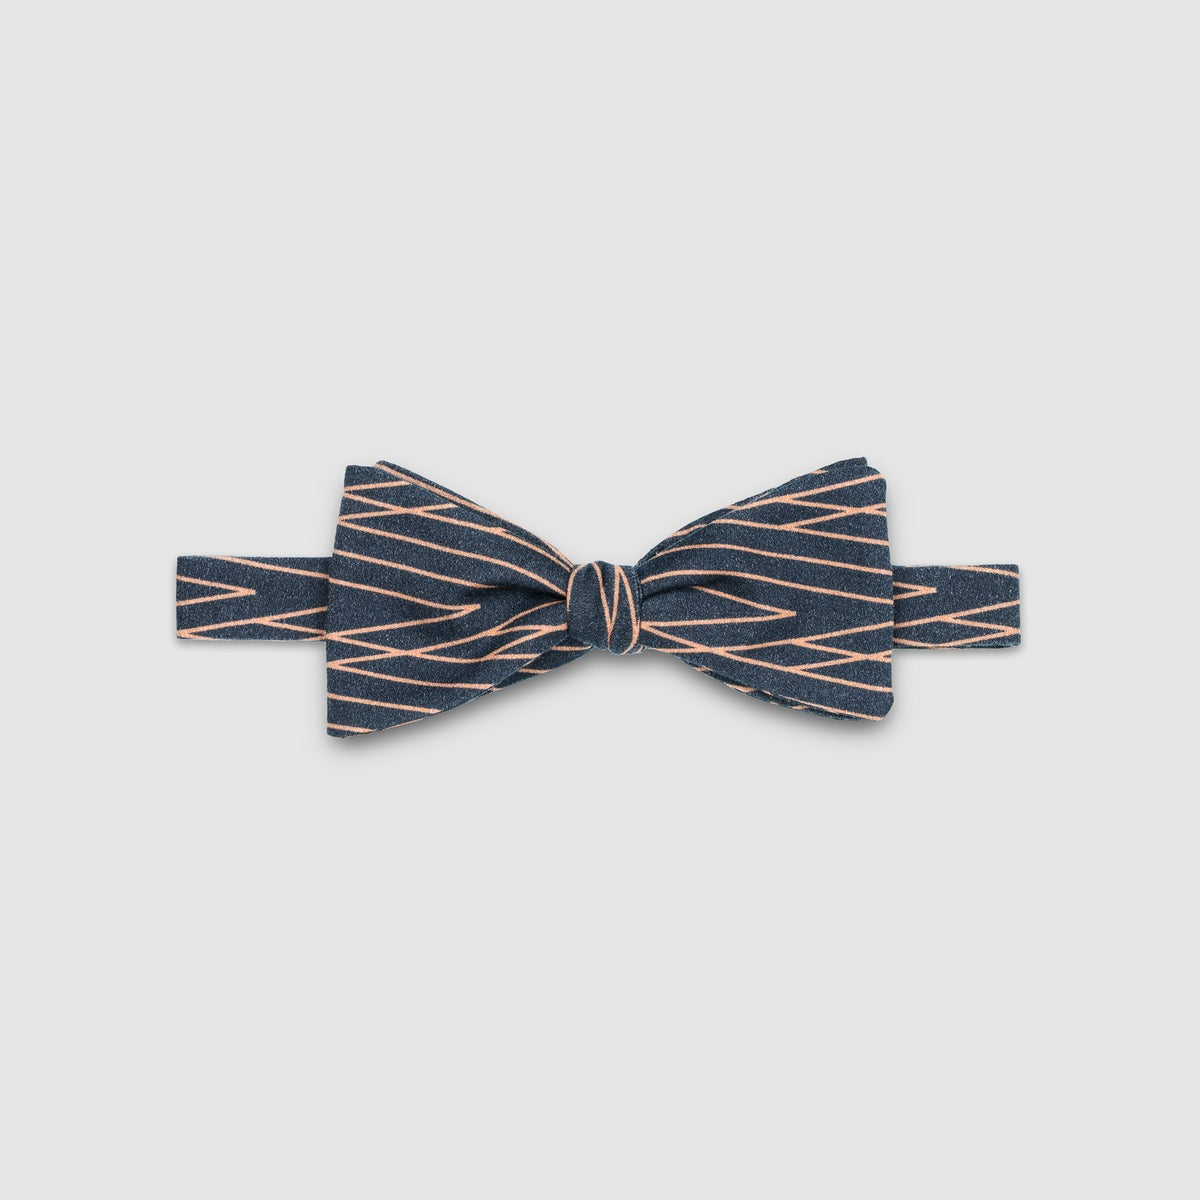 Image of DJANGO – the bow tie